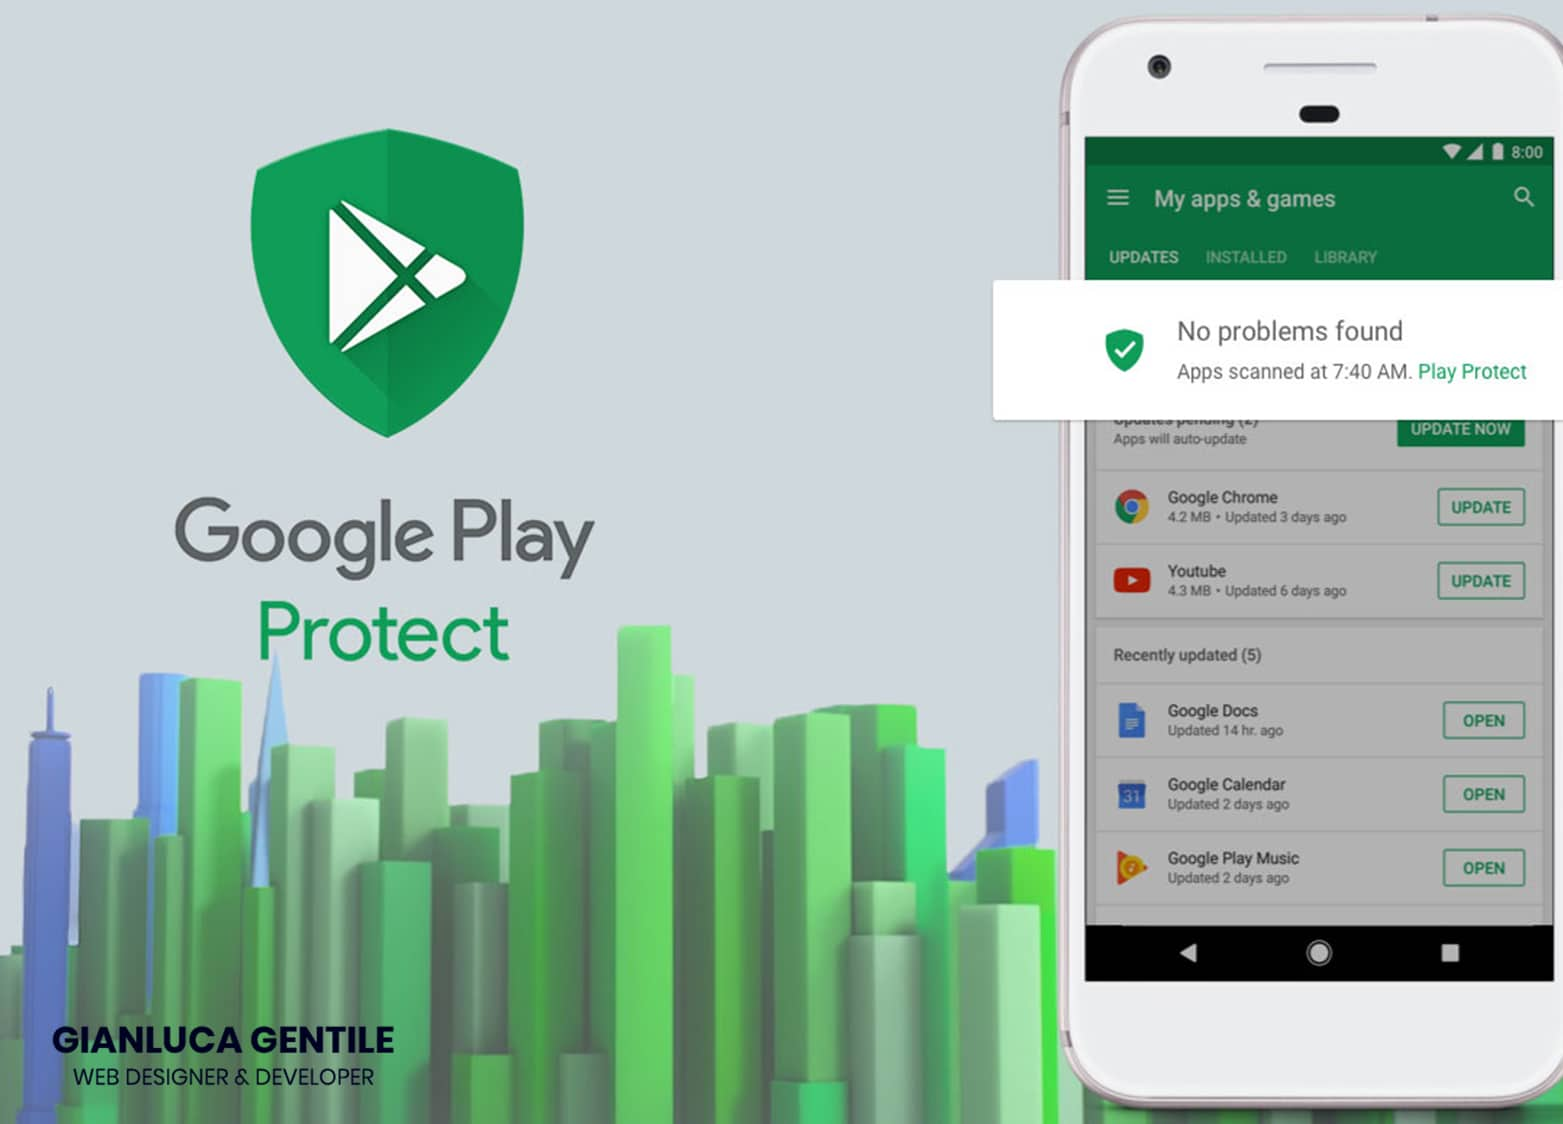 google play protect cos'è - Google Play Protect cos      - Google Play Protect cos'è